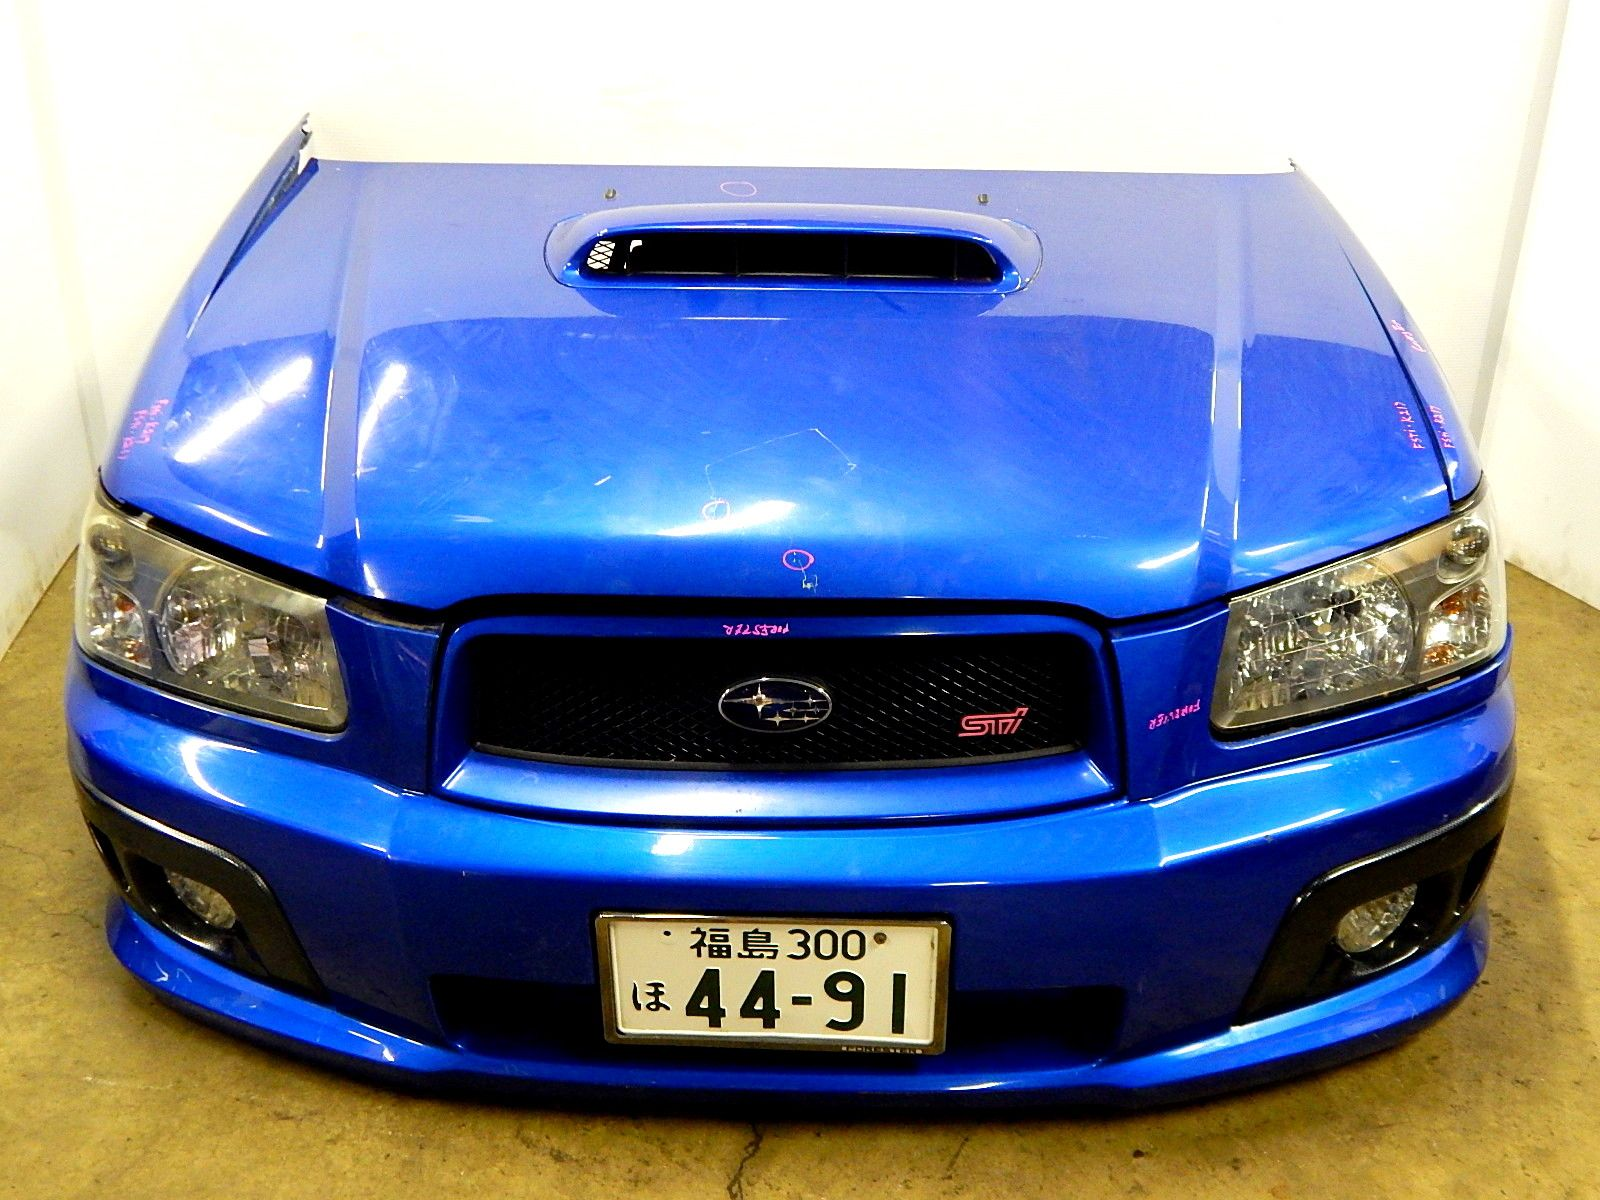 Subaru subaru forester sti front end conversion sg sg5 2003 2008 jdm subaru front end conversion versions legacy outback forester vanachro Gallery